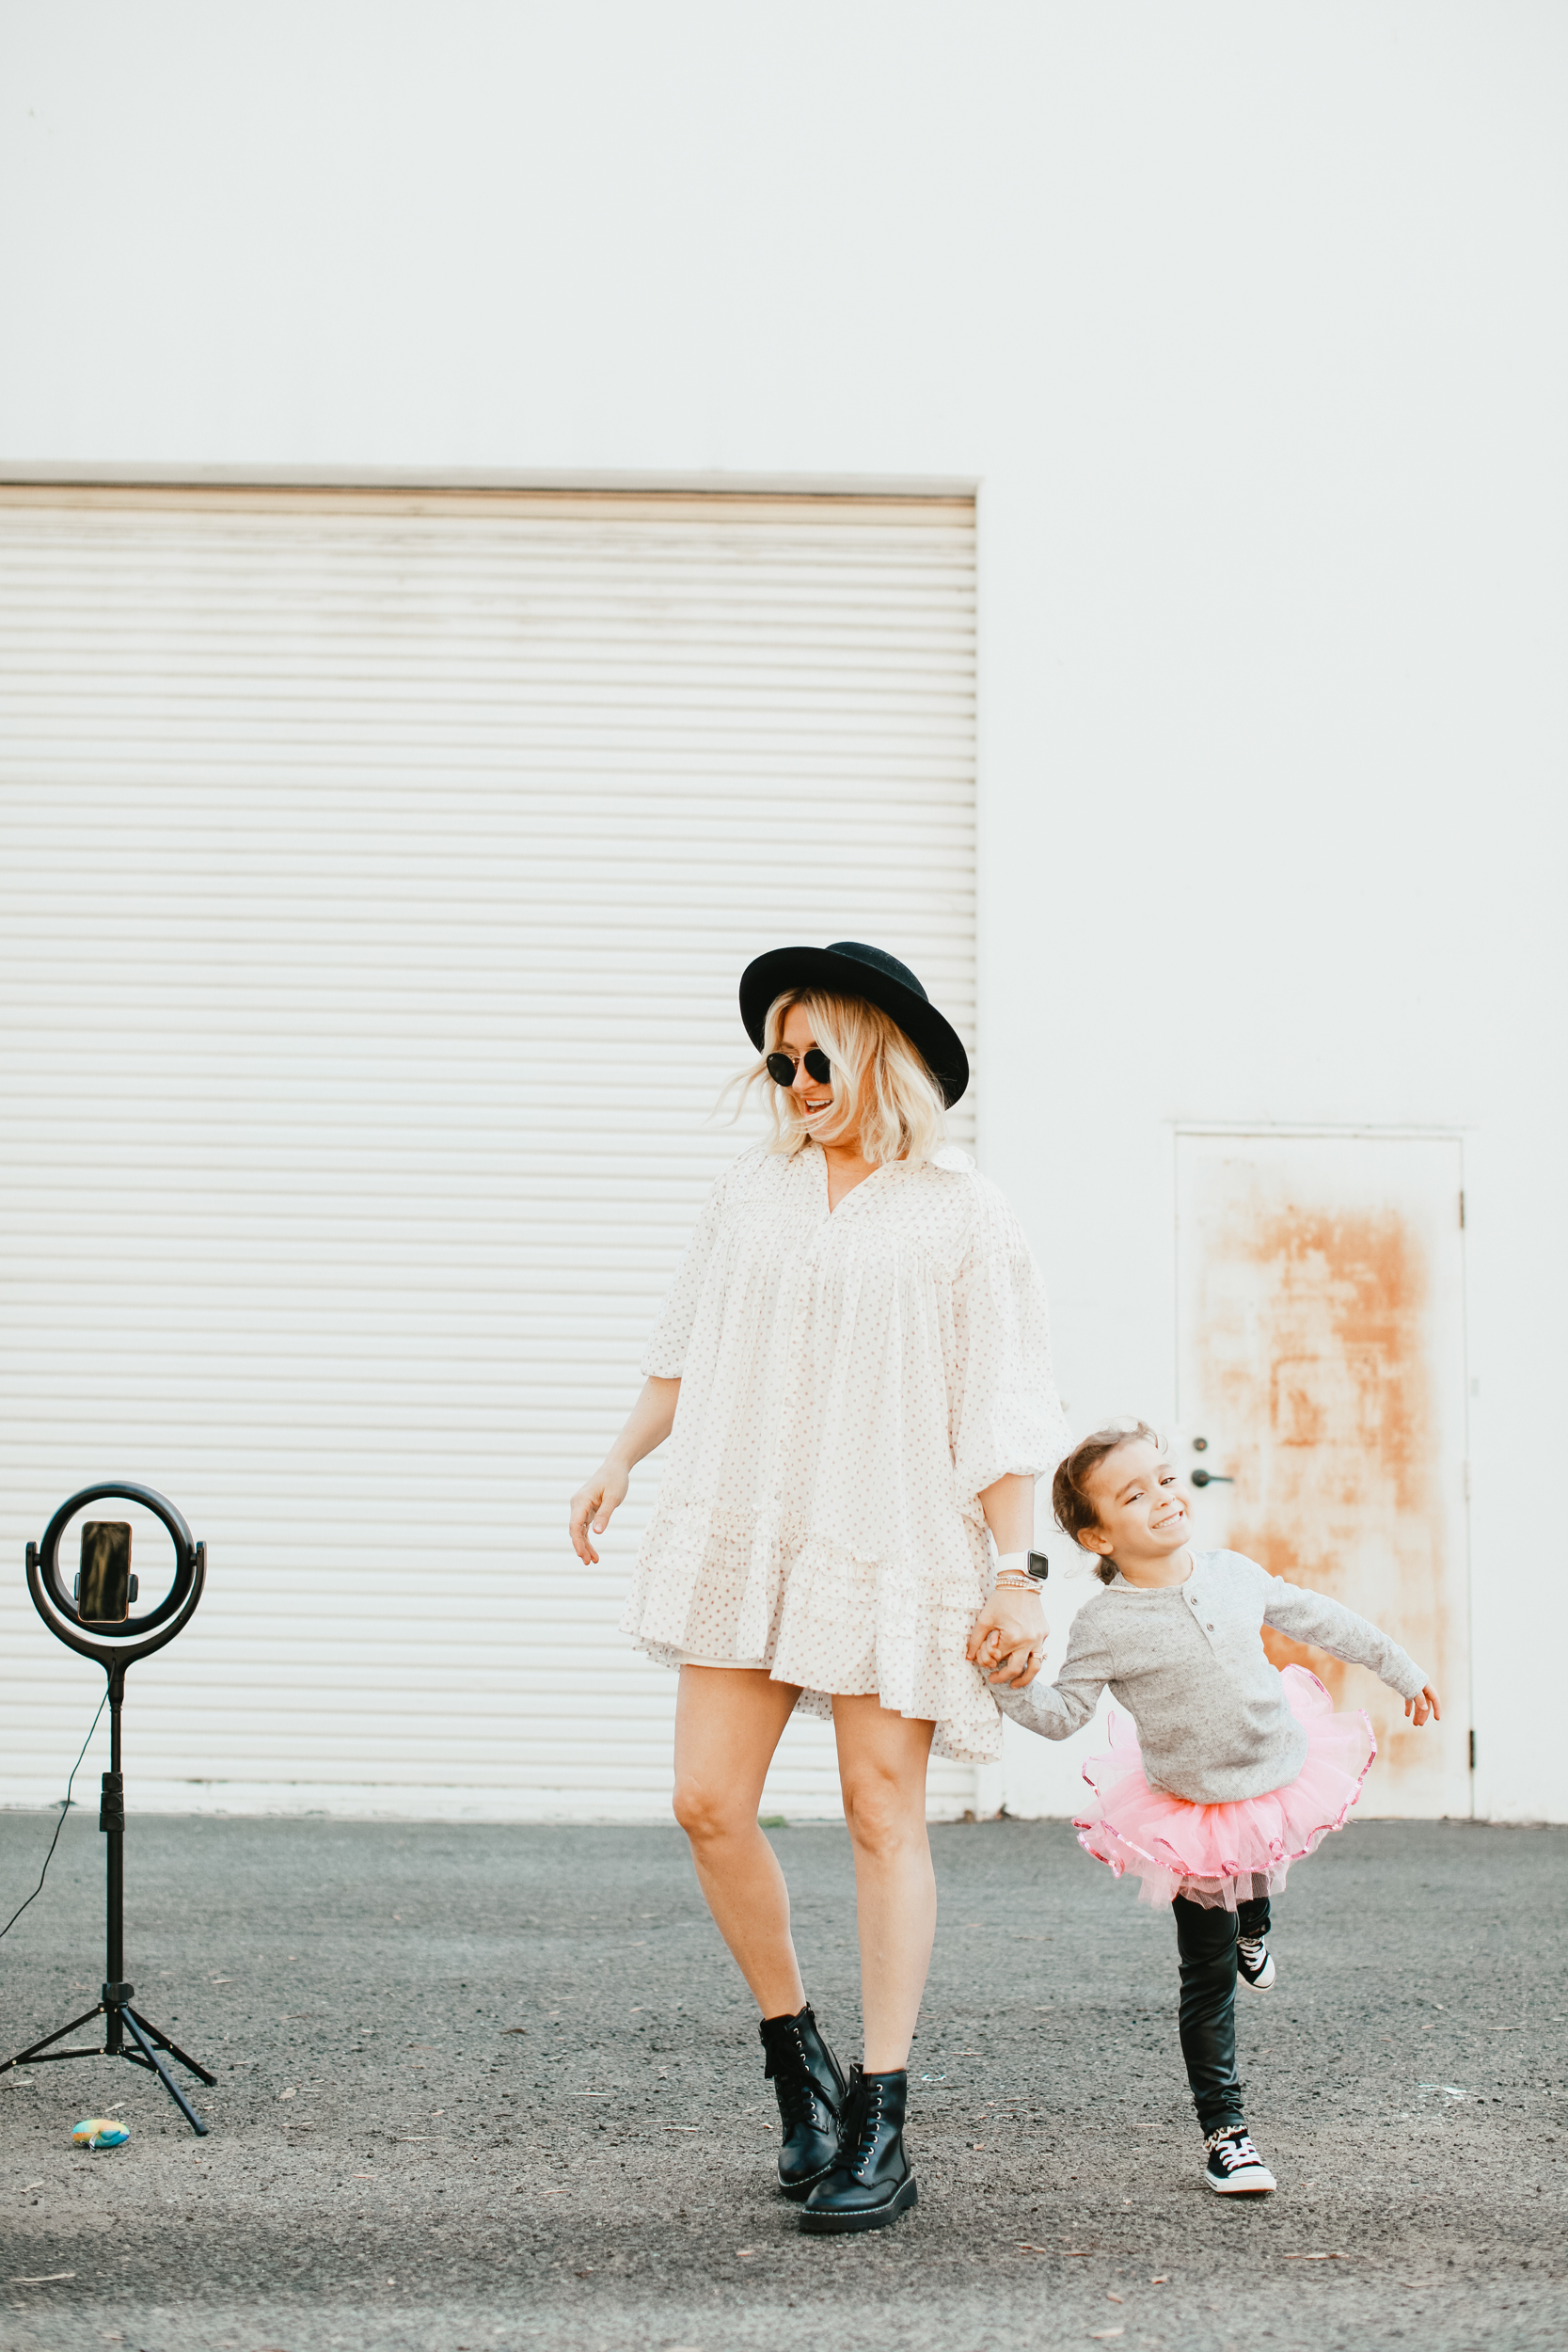 mom walking with her kid